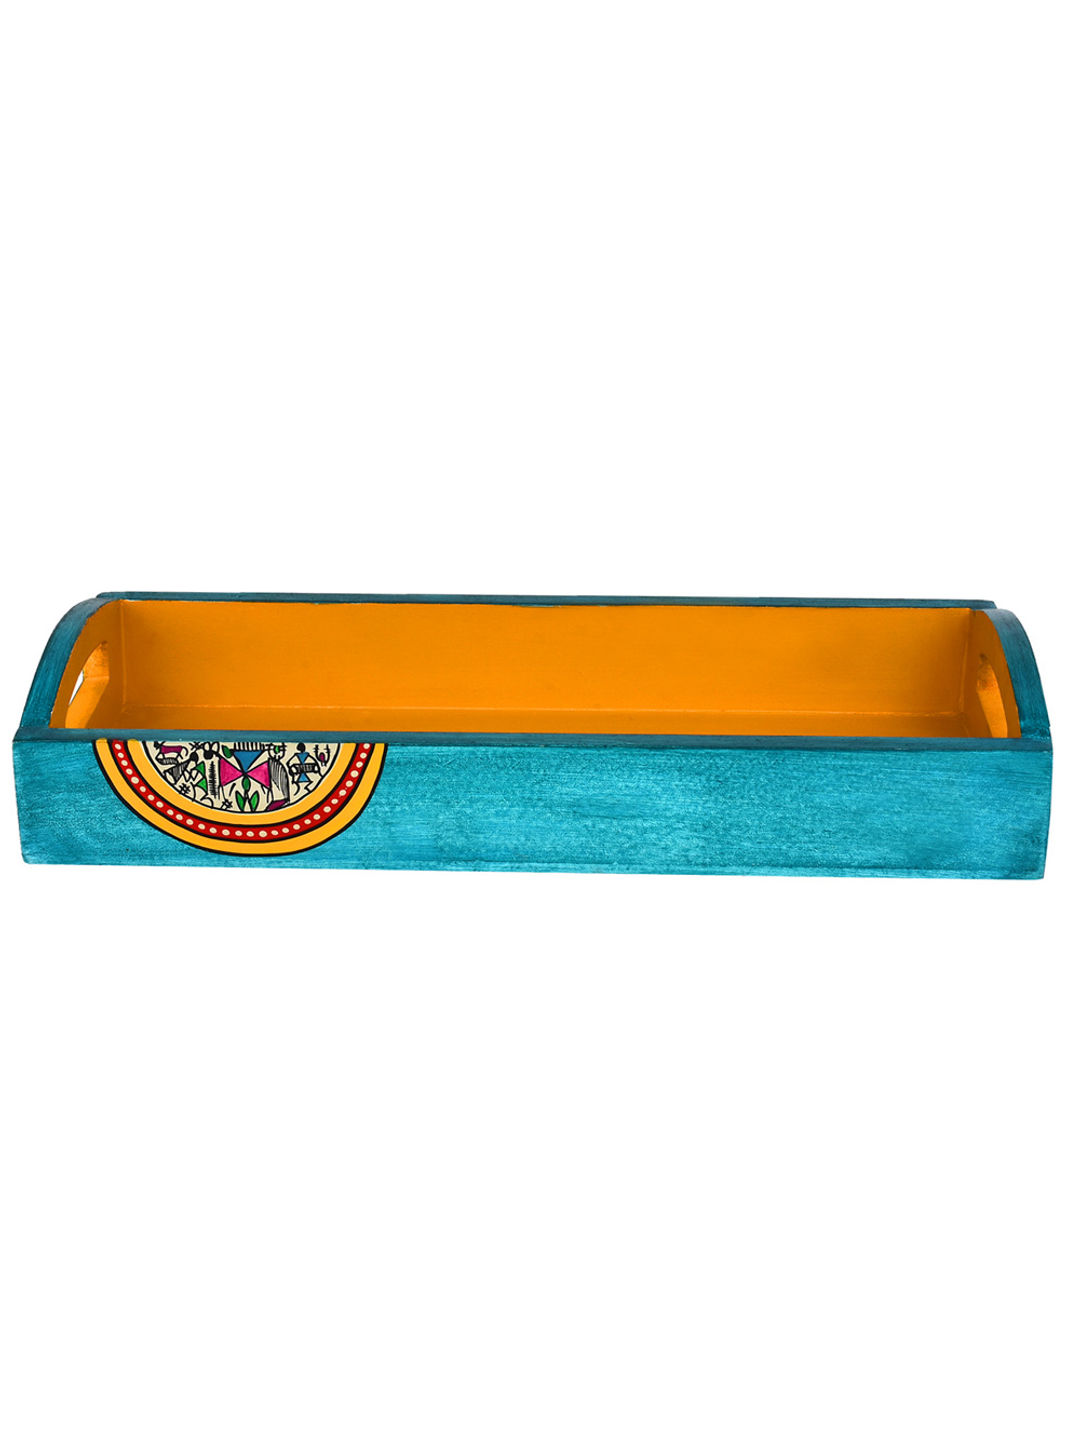 Hand Painted Blue Yellow Wooden Runner Tray